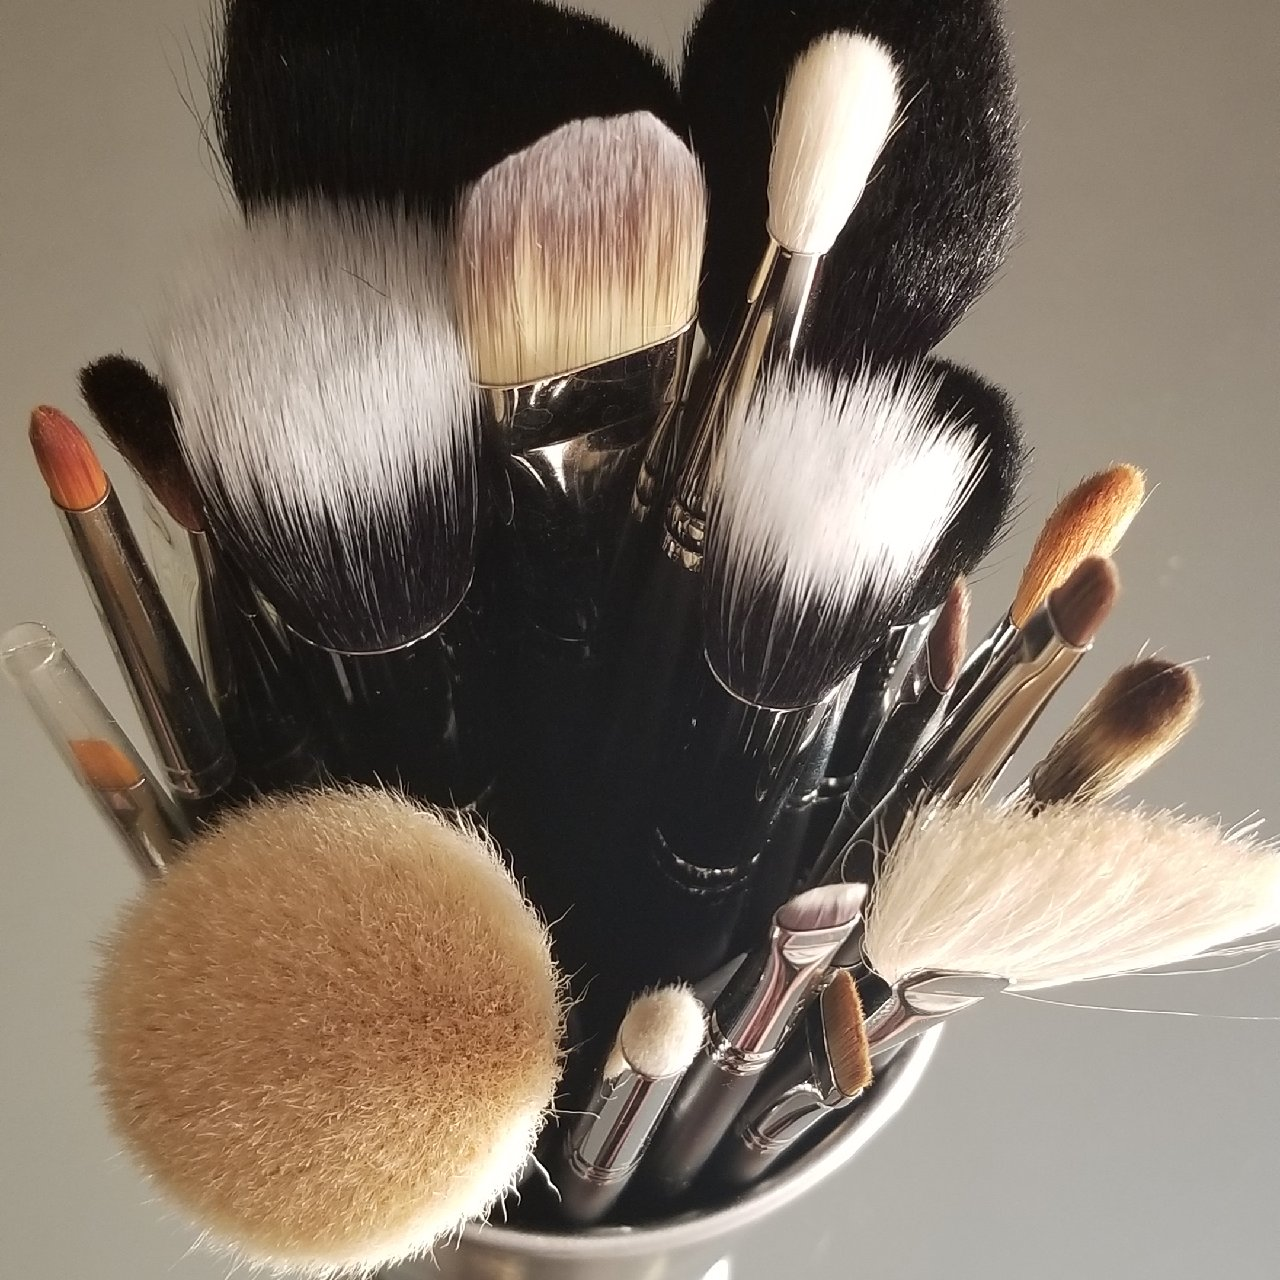 Makeup Artist, Best Makeup, Professional Makeup, Best Makeup in Bend, Bend Oregon, Celebrity Makeup Artist